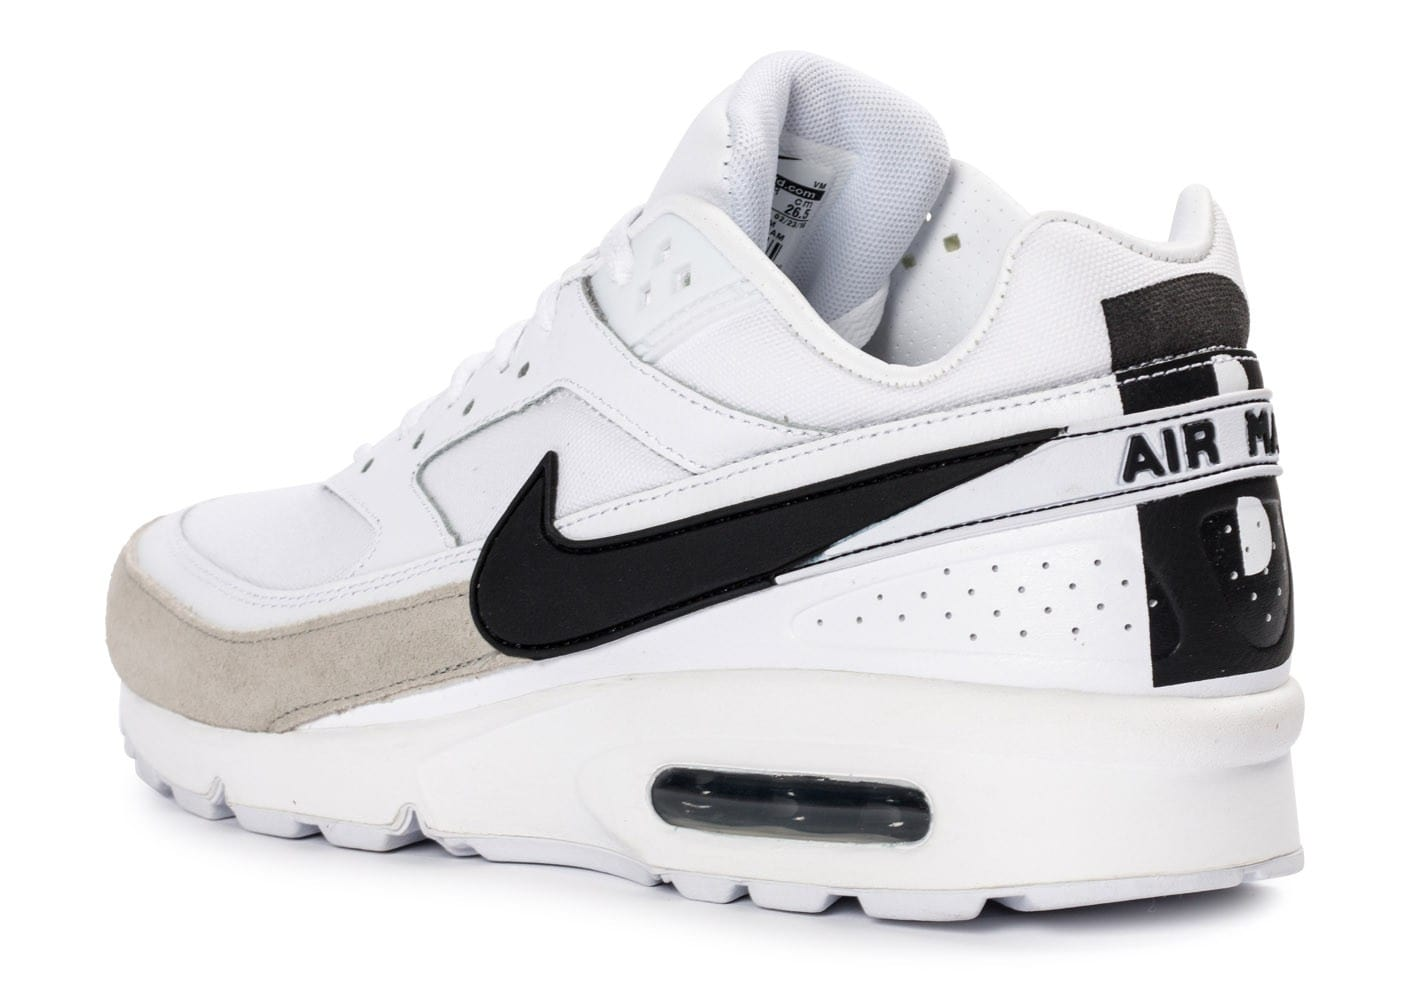 nike air max bw premium blanc noir chaussures homme chausport. Black Bedroom Furniture Sets. Home Design Ideas